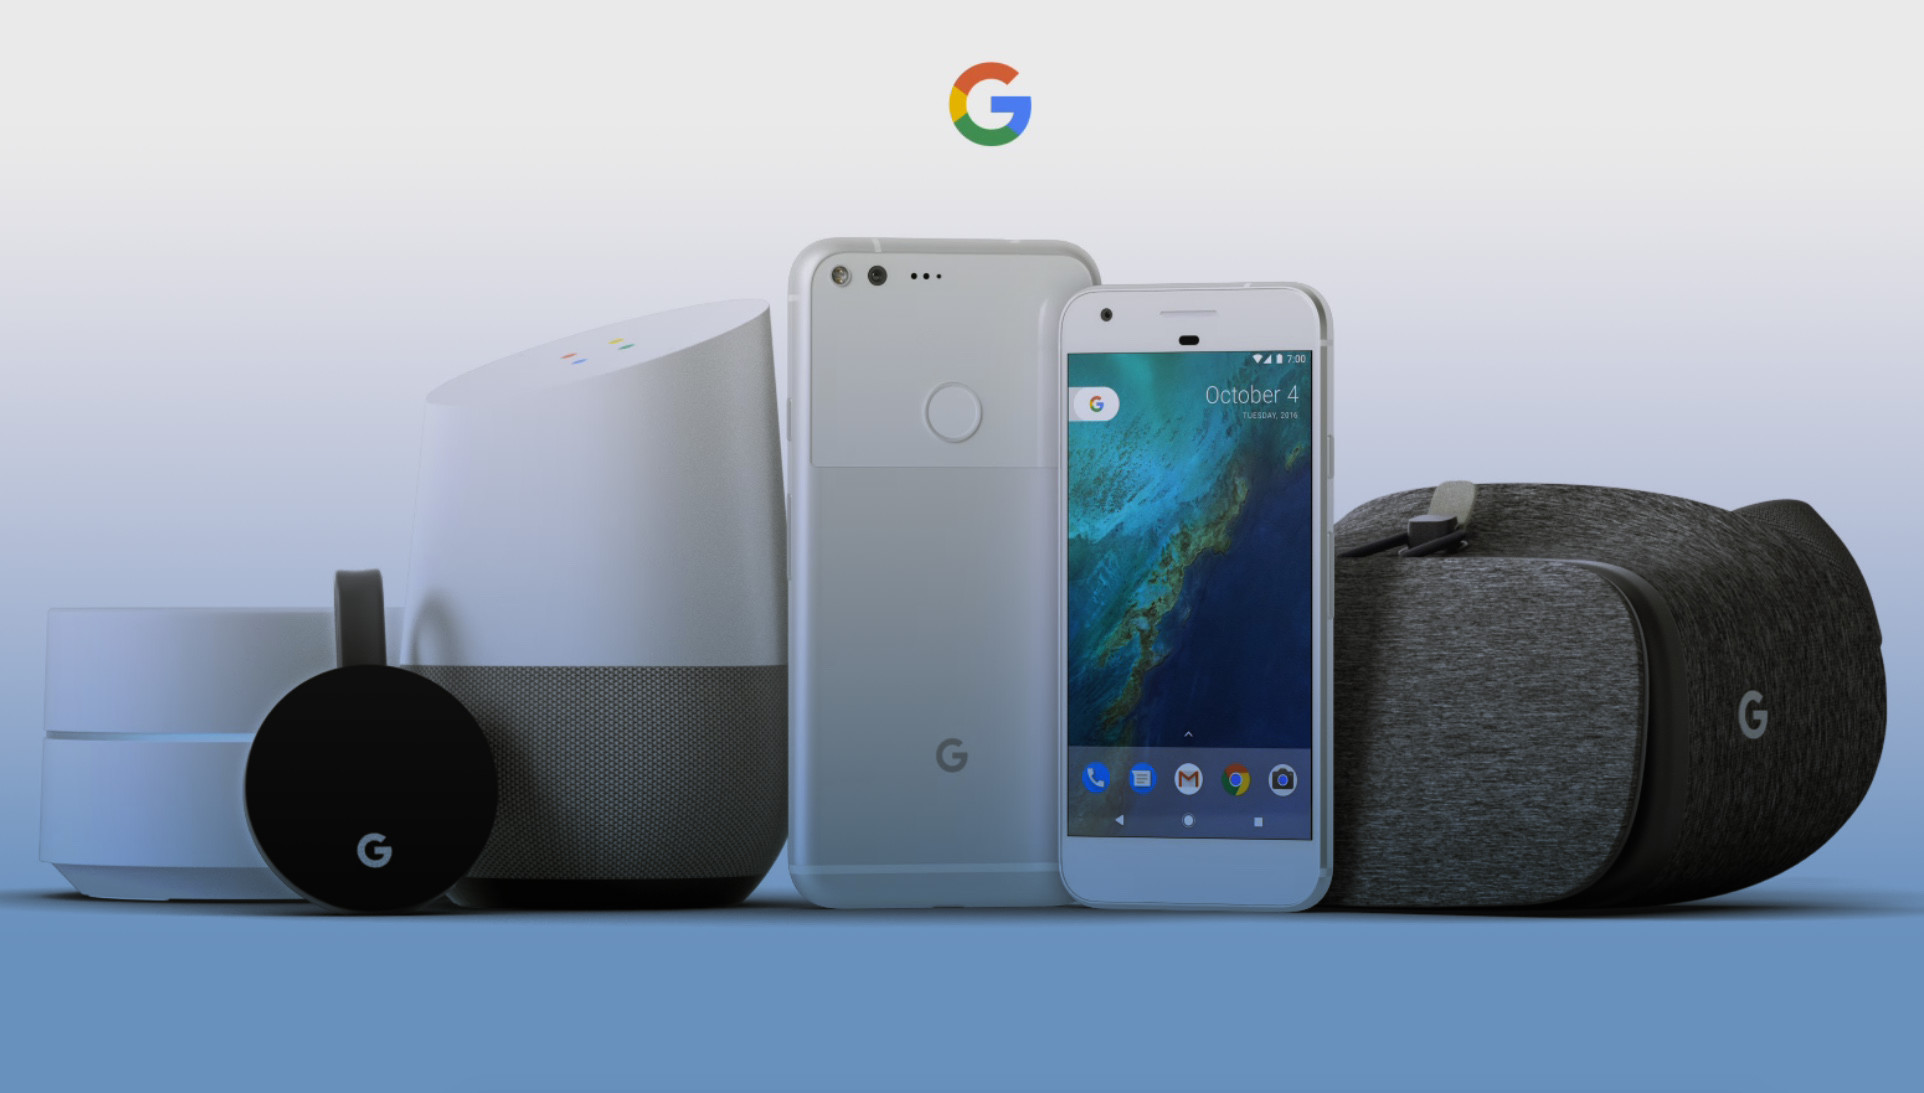 This is Google's biggest play on hardware & software yet, with AI at the center